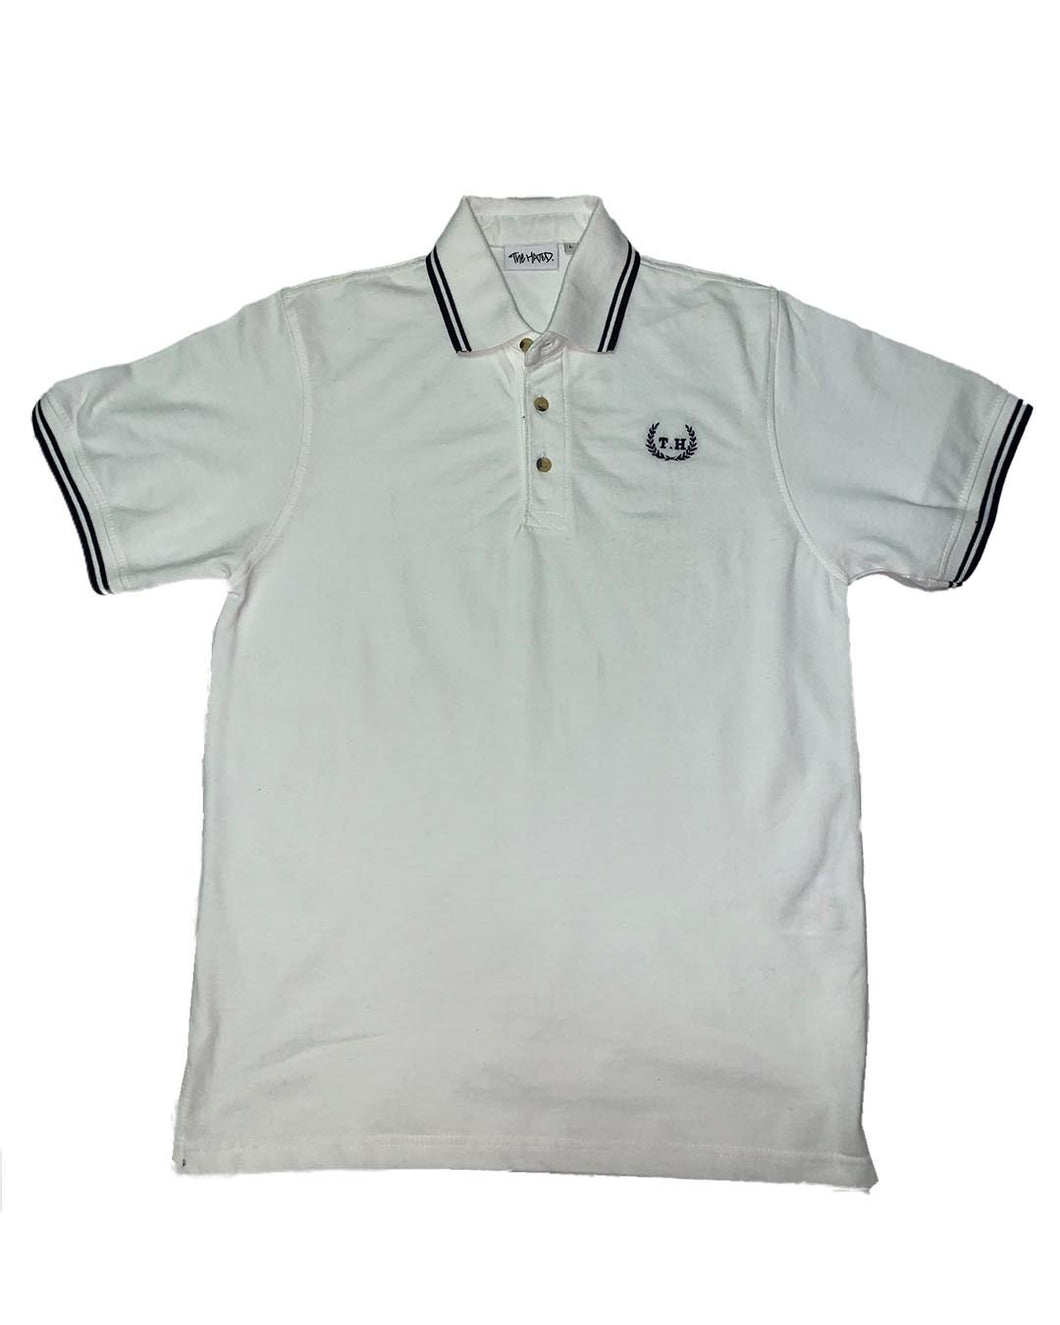 Ted Herry cotton polo shirt